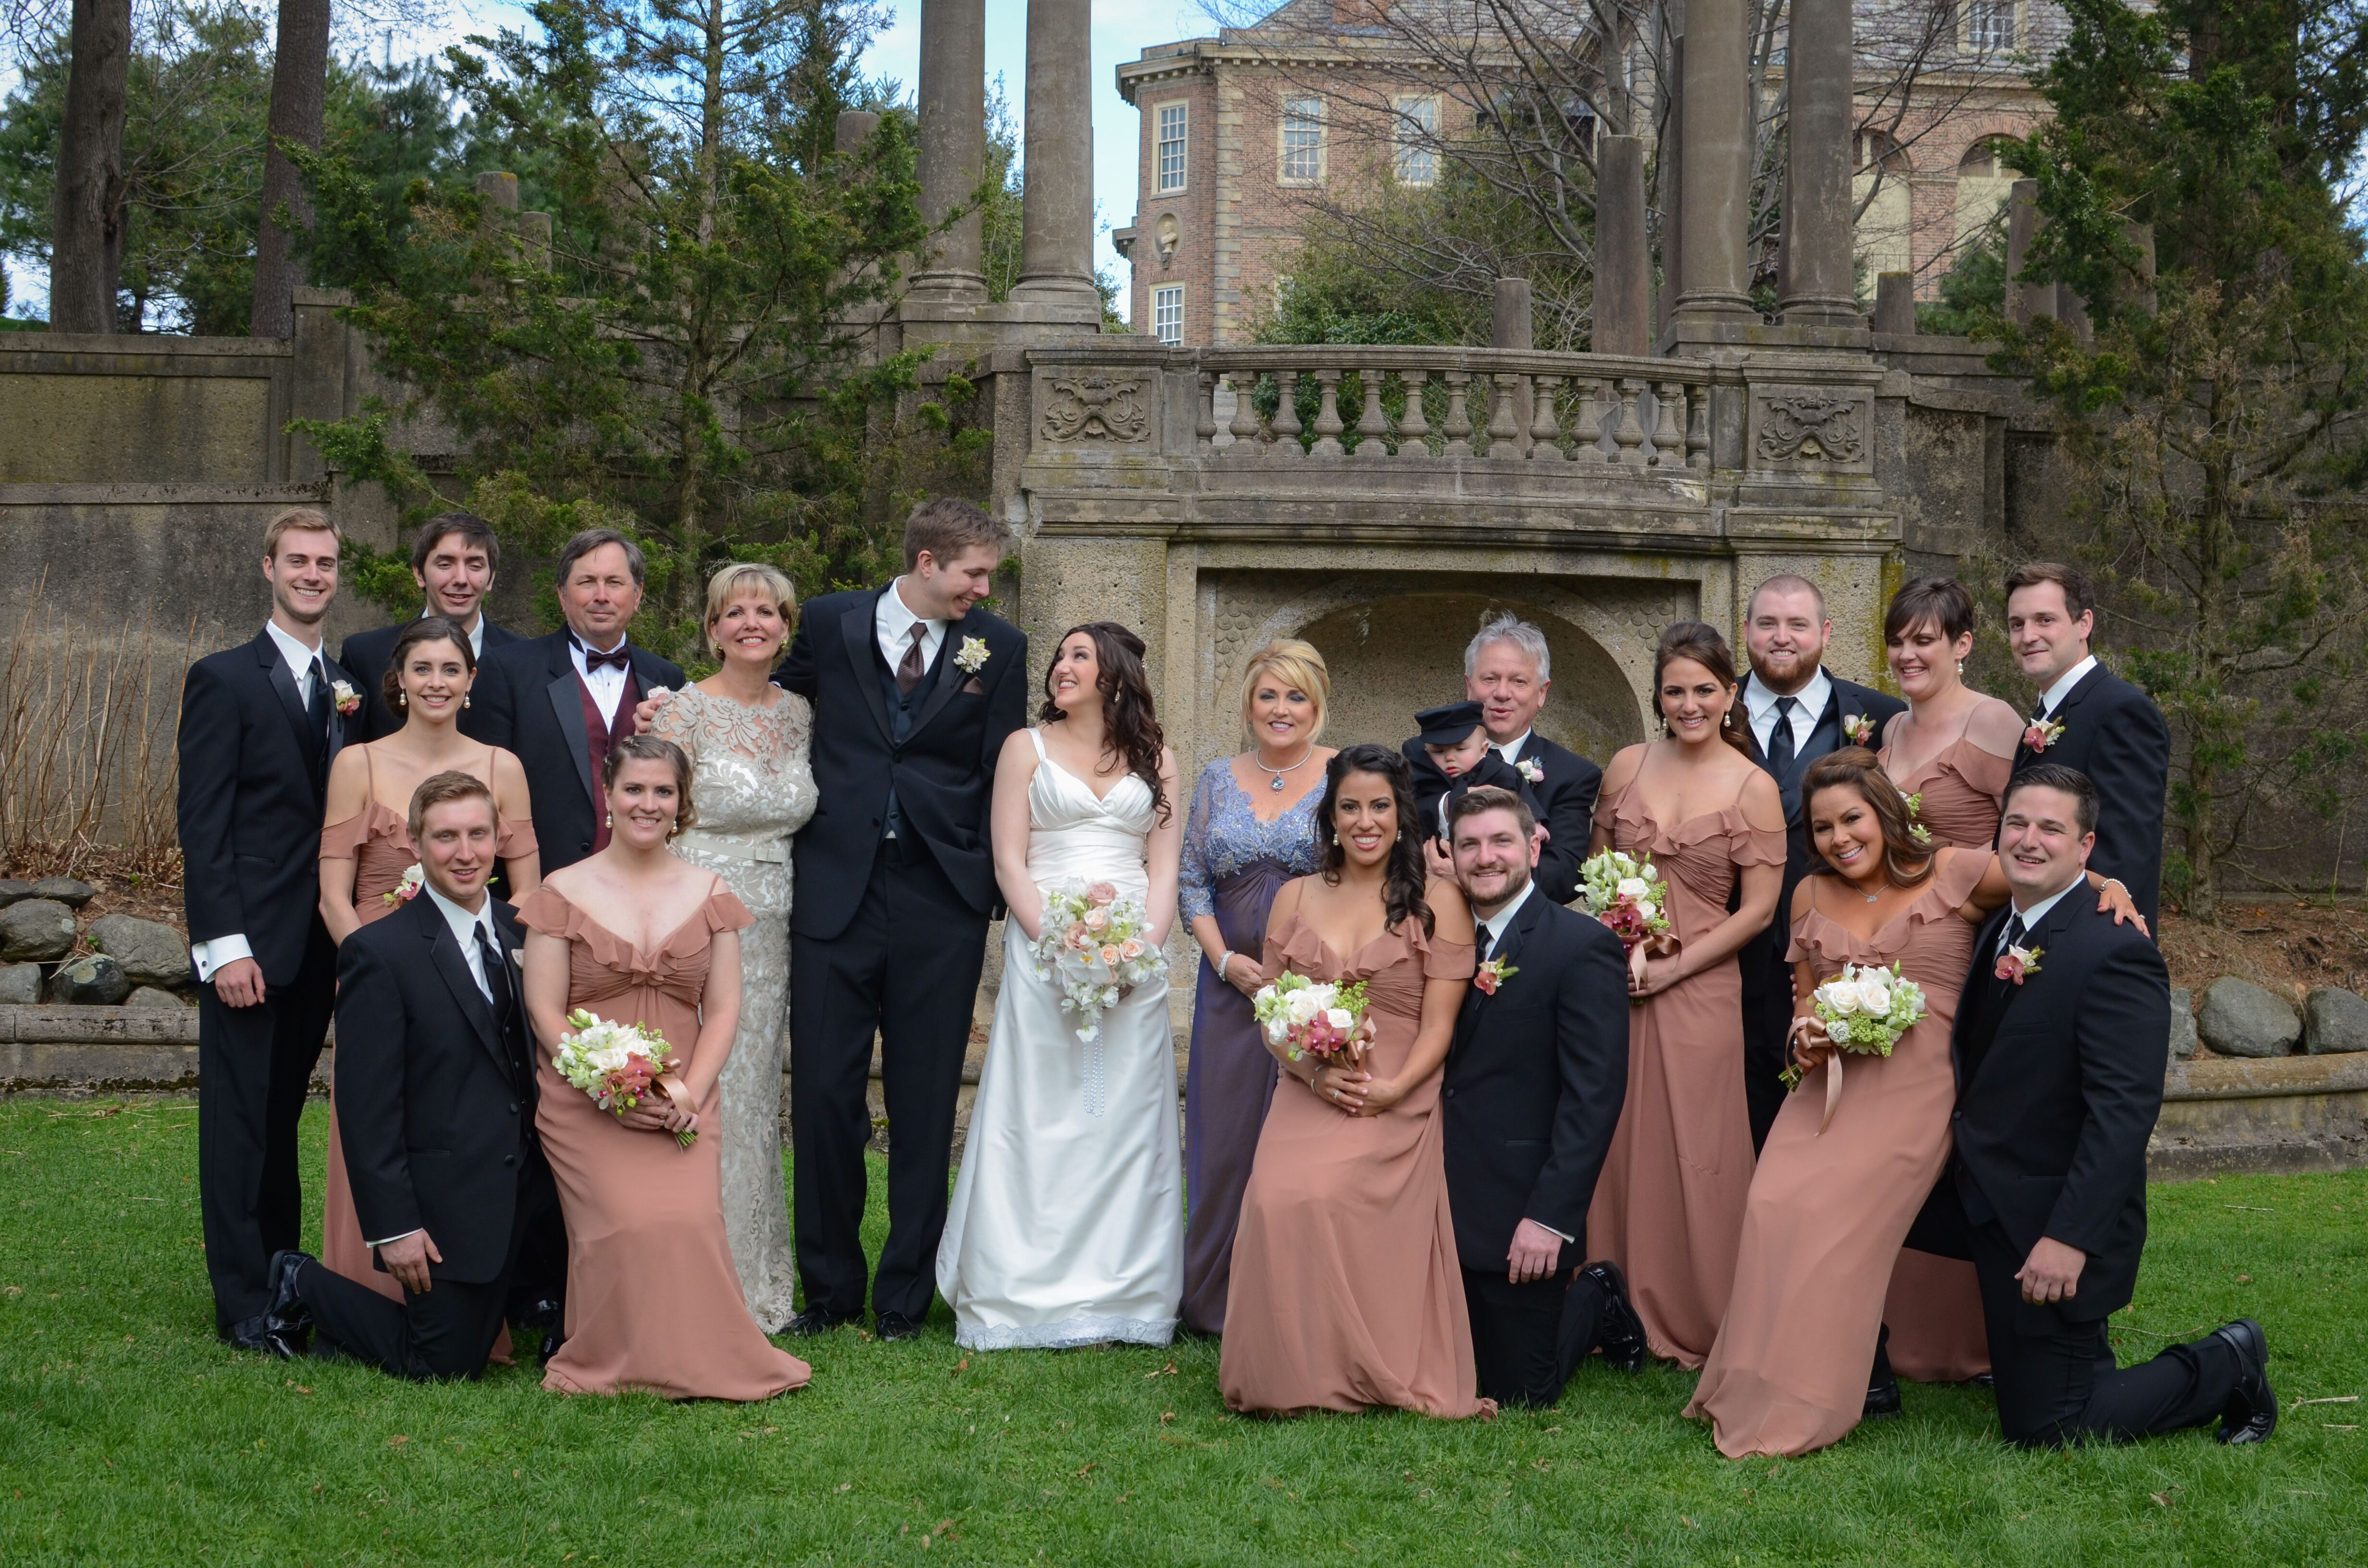 Wedding Party Dressed In Rose Gold And Classic Black And